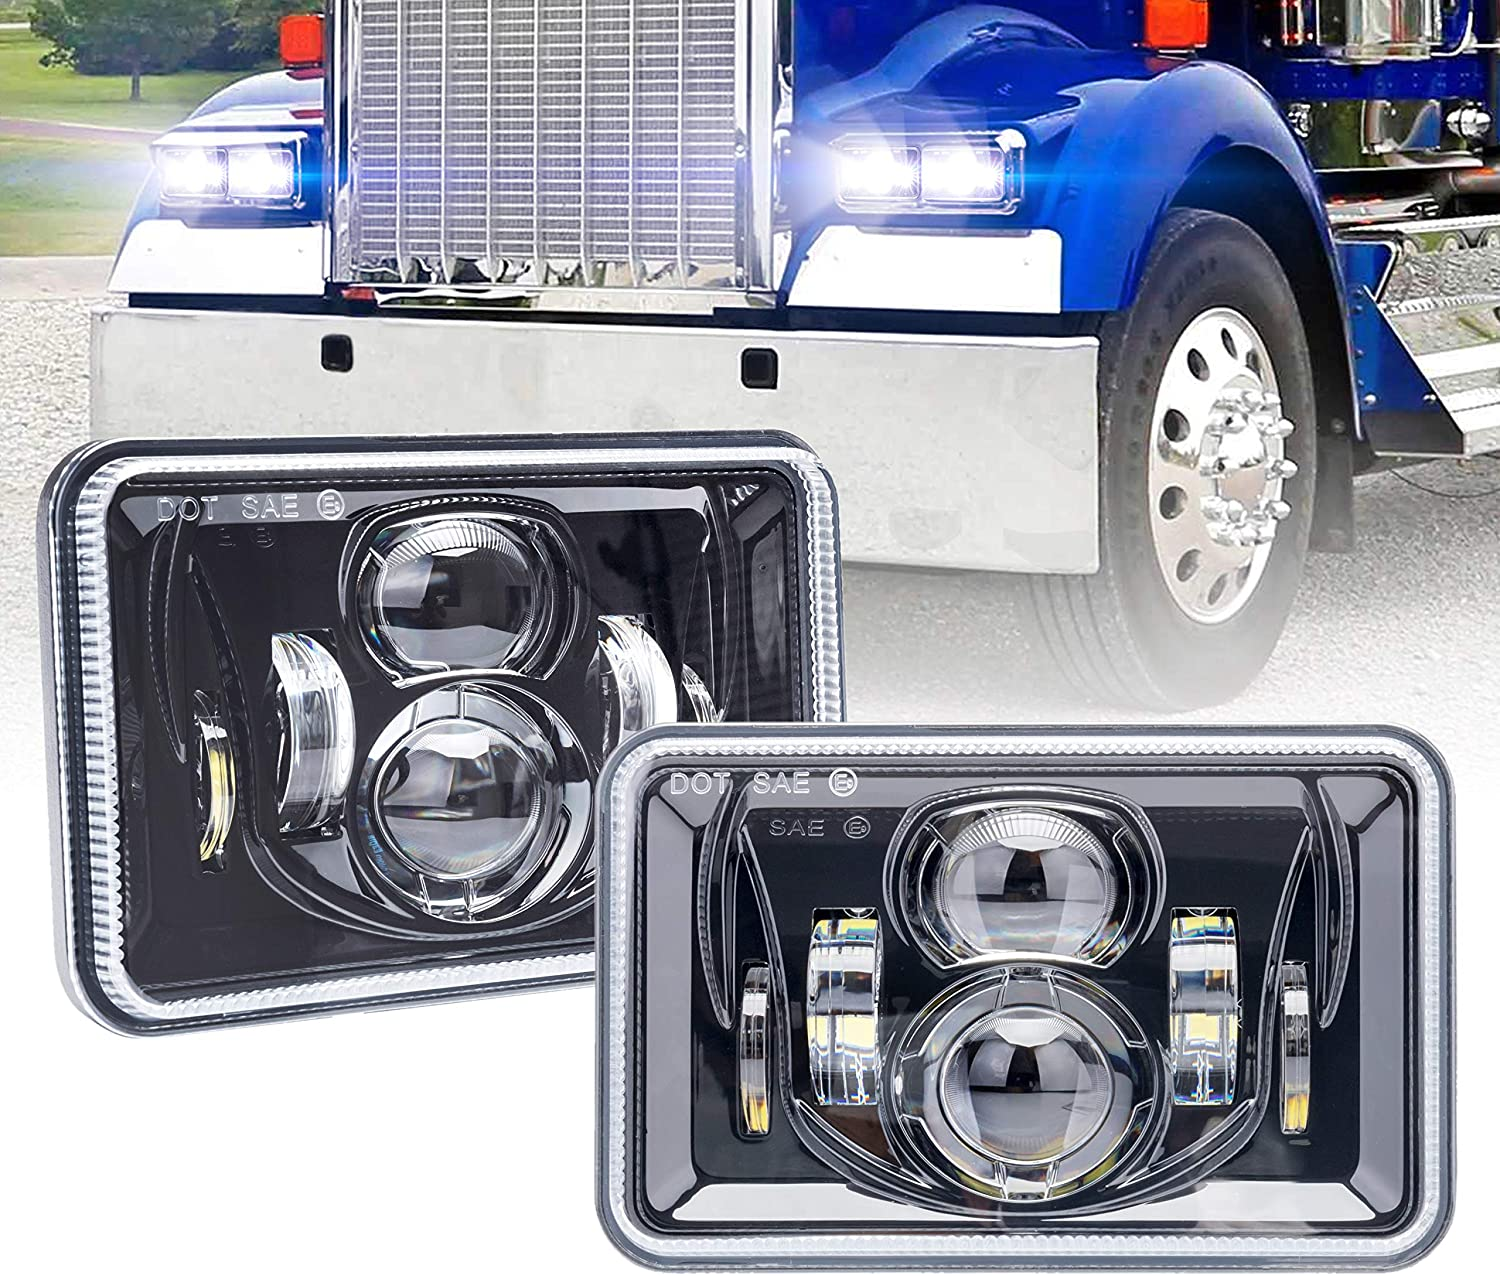 Rectangular 4X6 LED Headlights with High Low Beam H4651 H4652 H4656 H4666 H6545 Headlamp Replacement Projector Lens for Freightliner Peterbilt Kenworth Ford Probe Oldsmobile Cutlass Trucks 60W